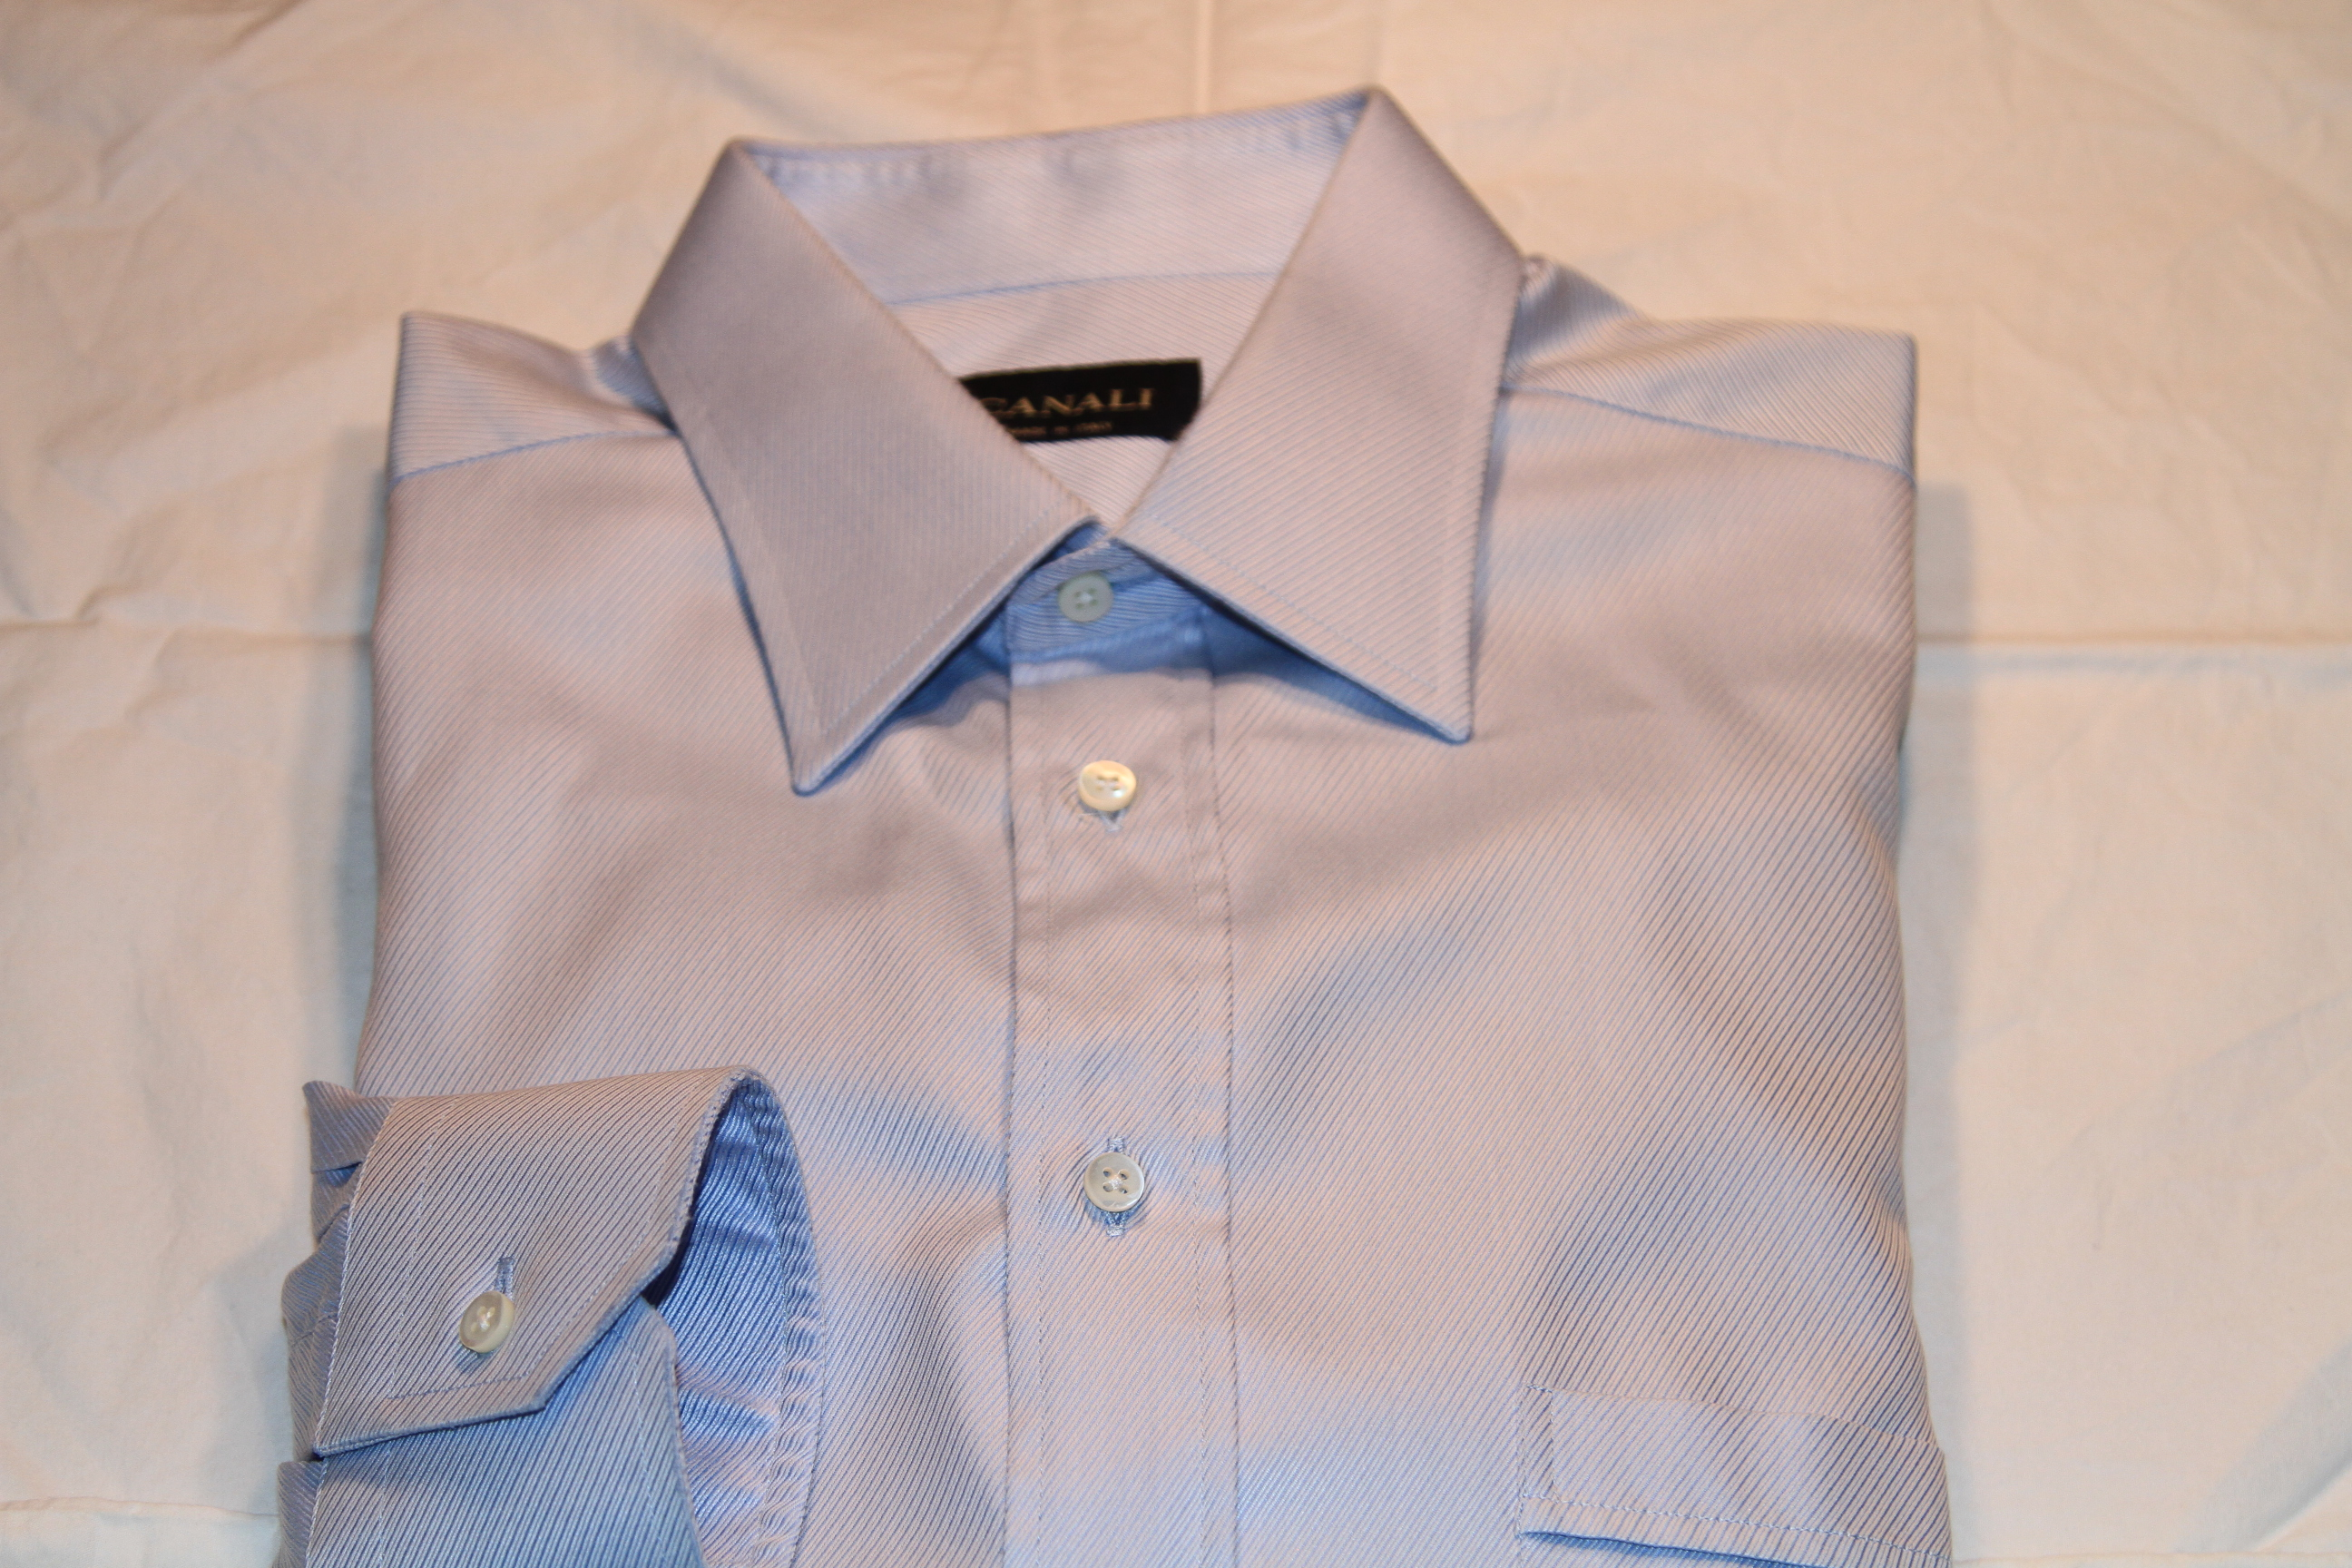 #16 - Canali 41/16 Light Blue Solid (diagonal type pattern)